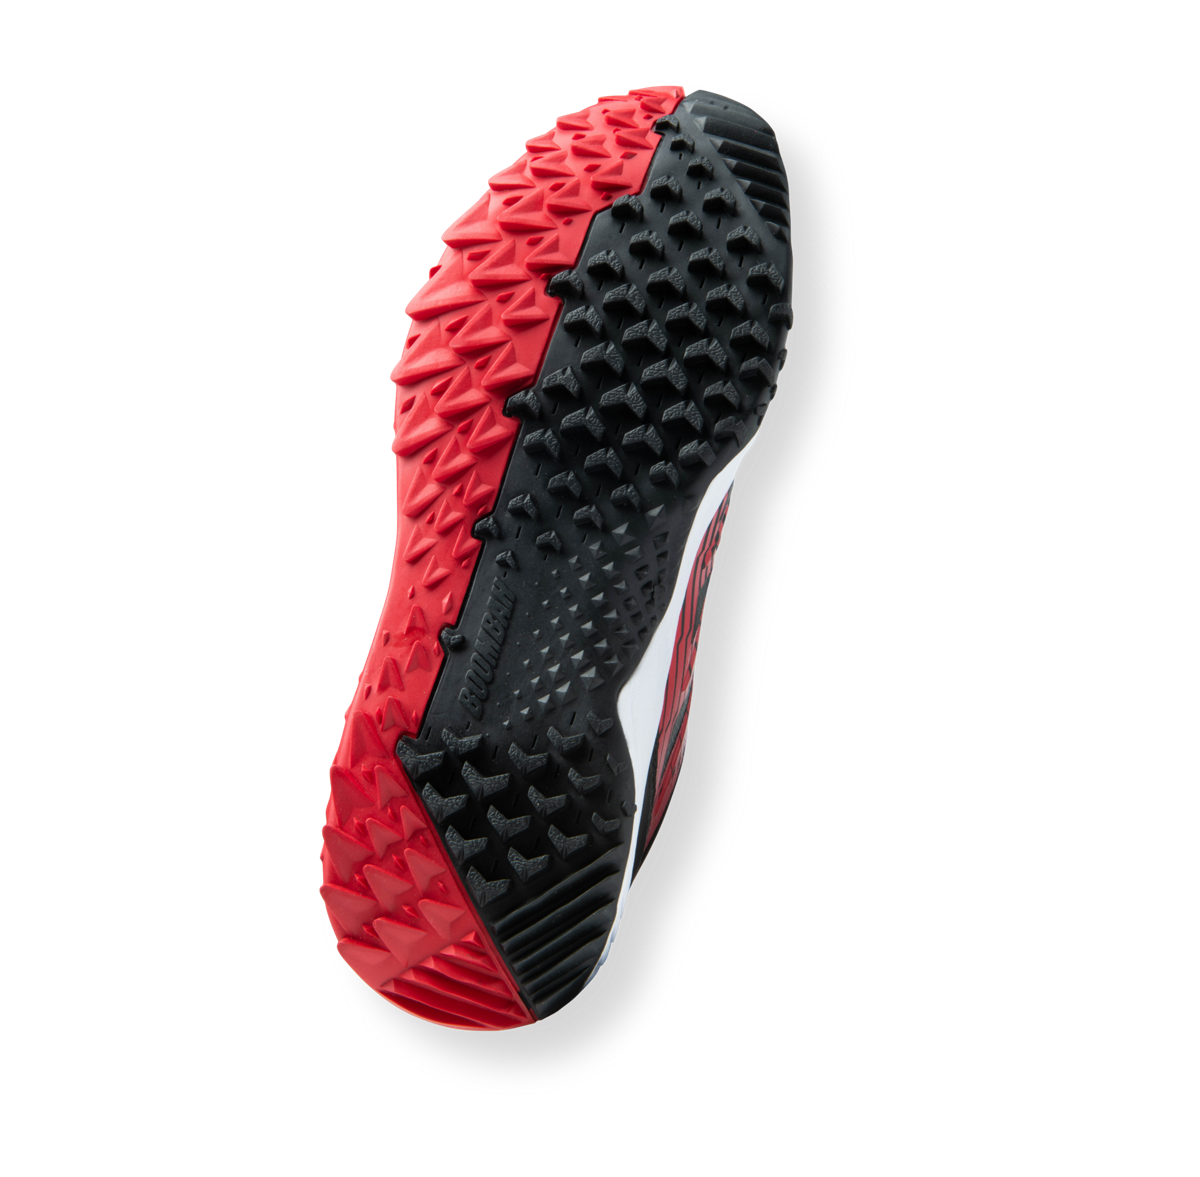 Red and black baseball shoe outsole